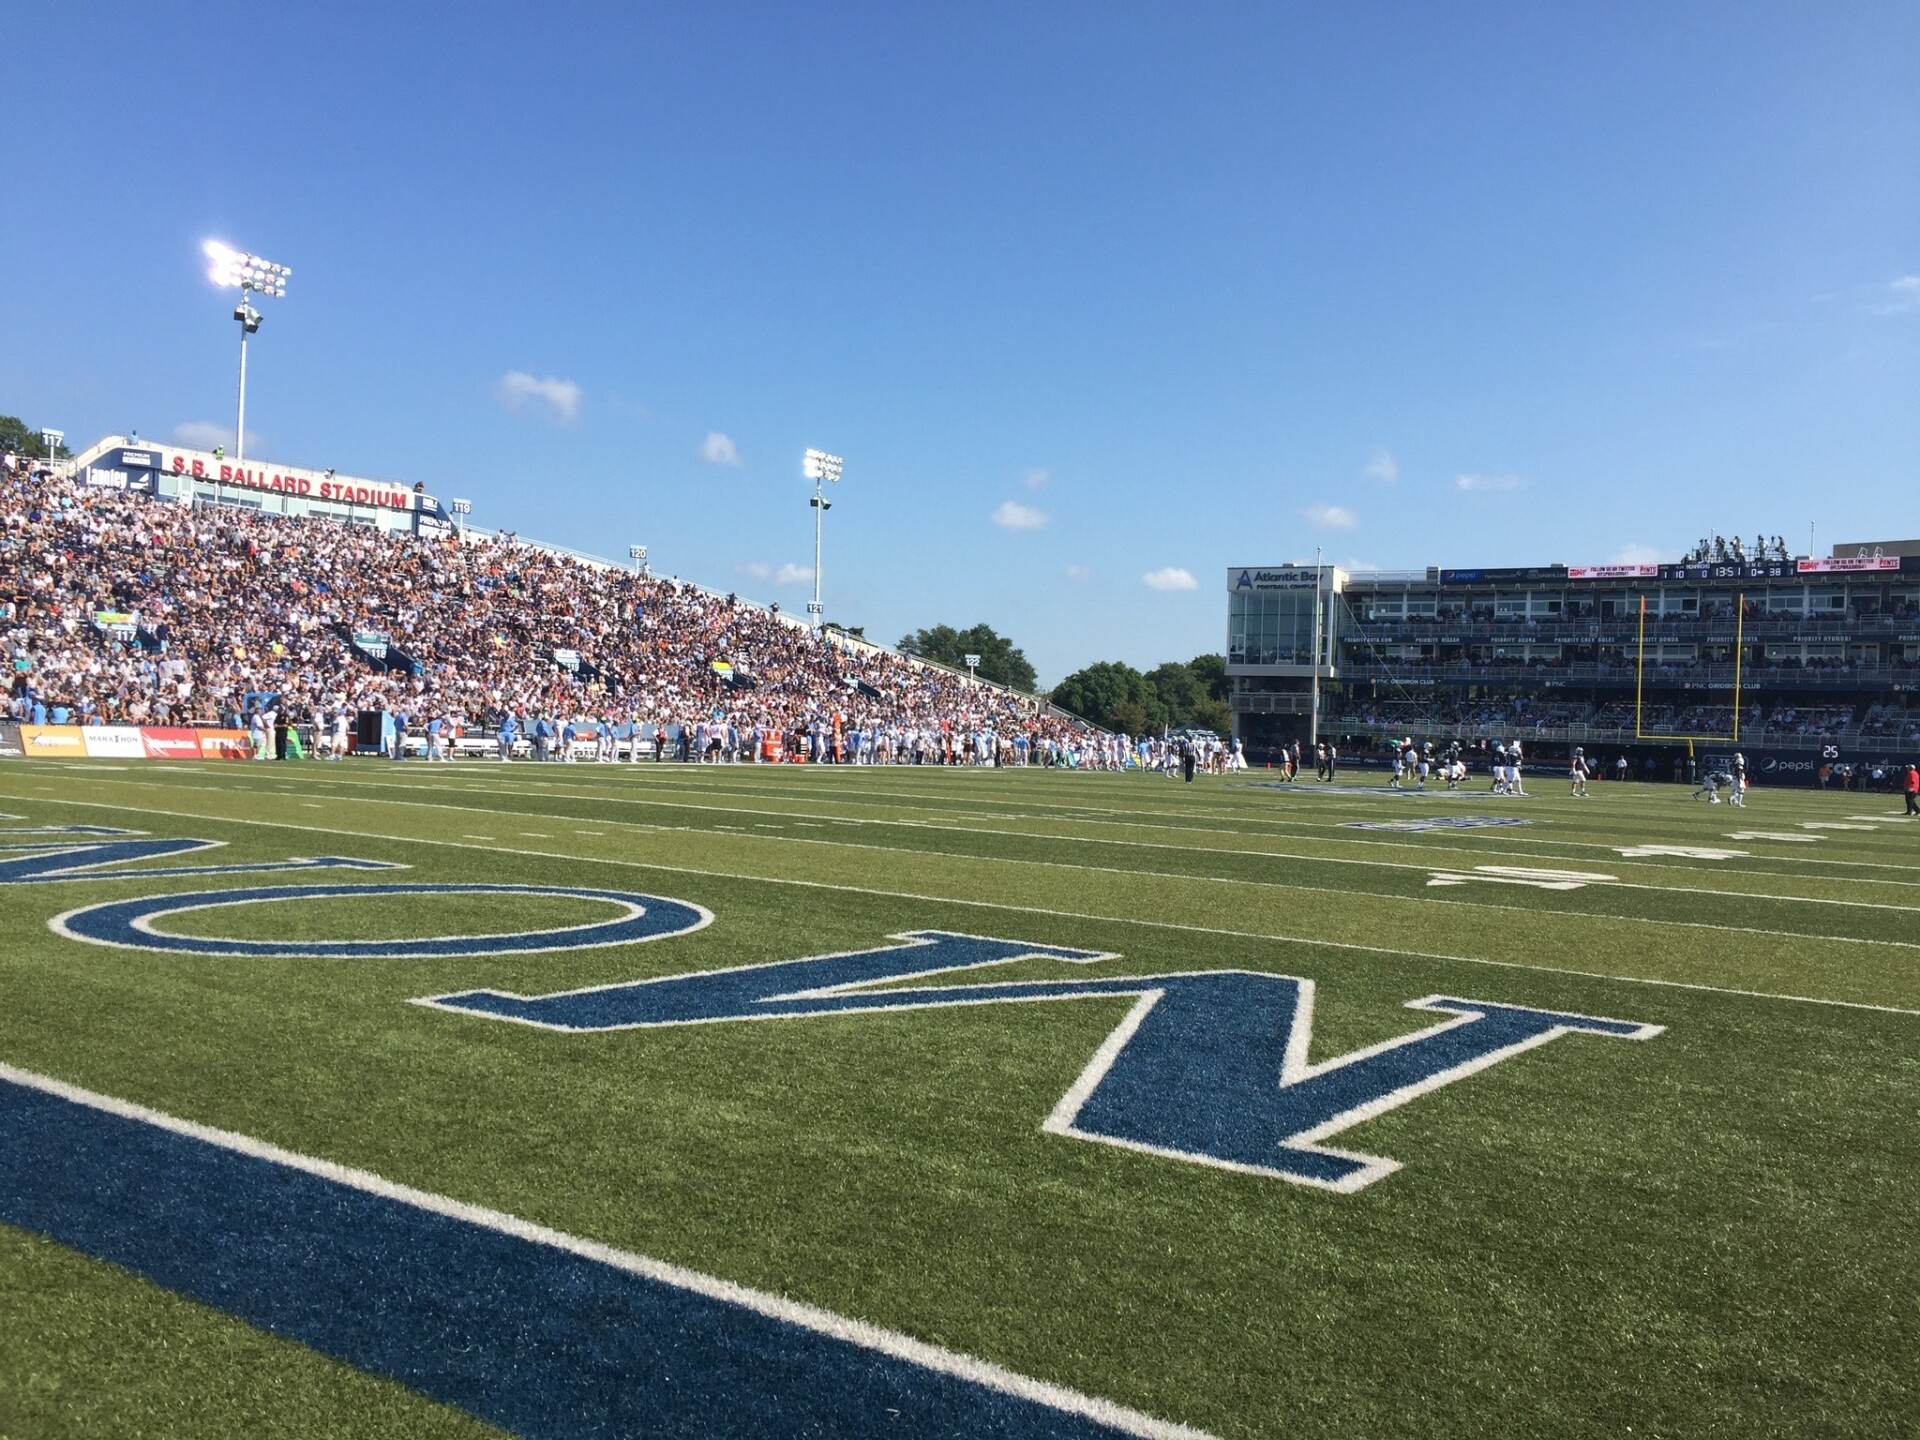 Photos: Photo Gallery: ODU's last game at Foreman Field and memories from years past